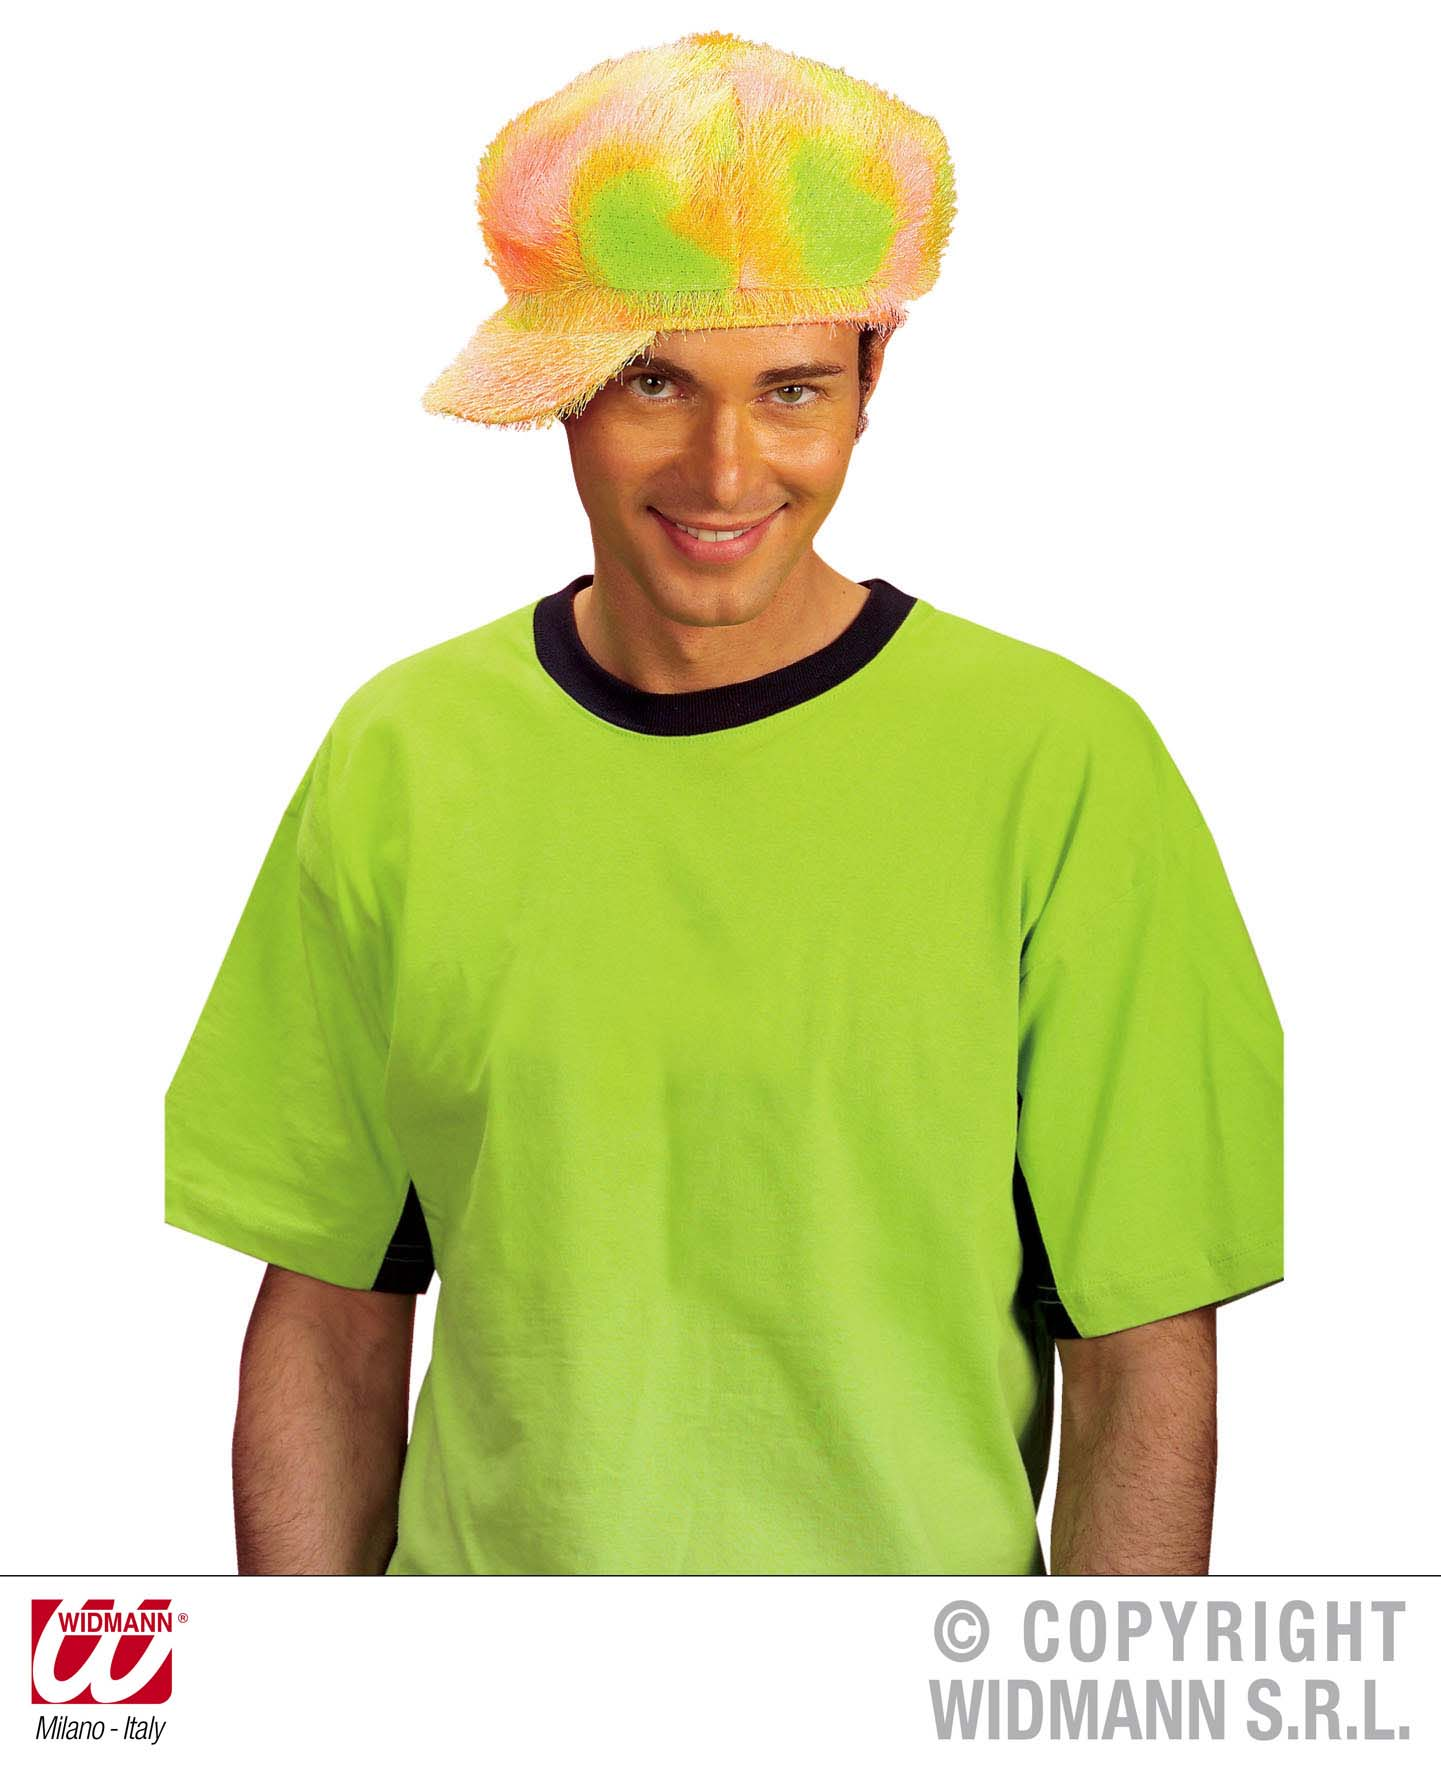 Neon Fashion Hat - Yellowith Pink Fancy Dress